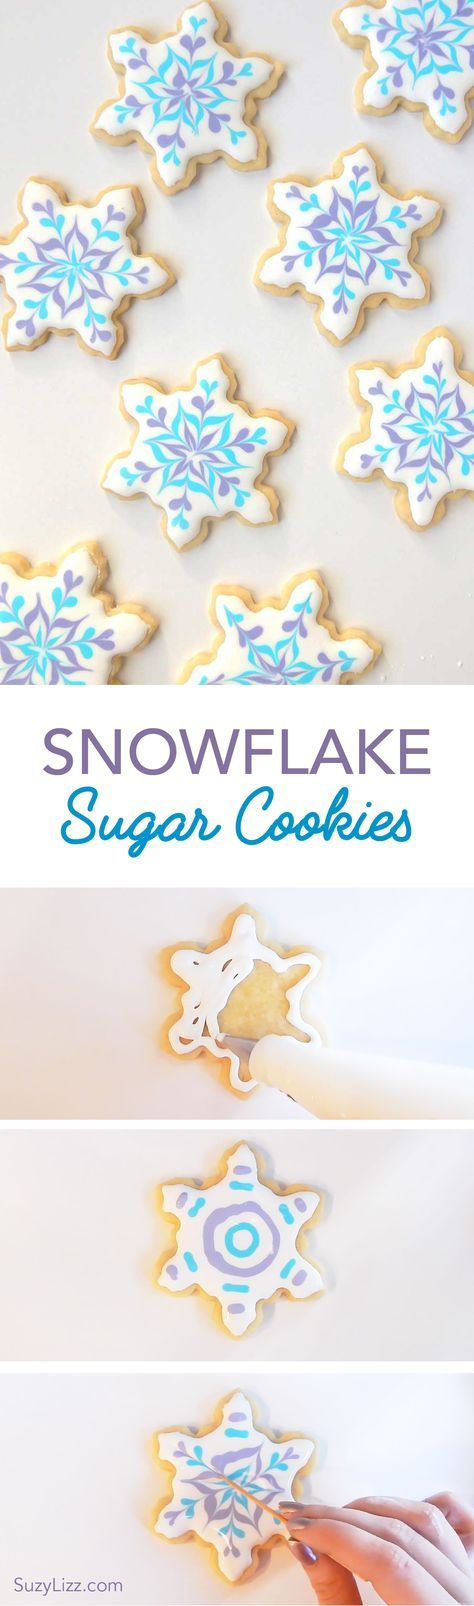 Easy snowflake decorating tutorial using royal icing and sugar cookies. Easy winter Holiday Christmas DIY